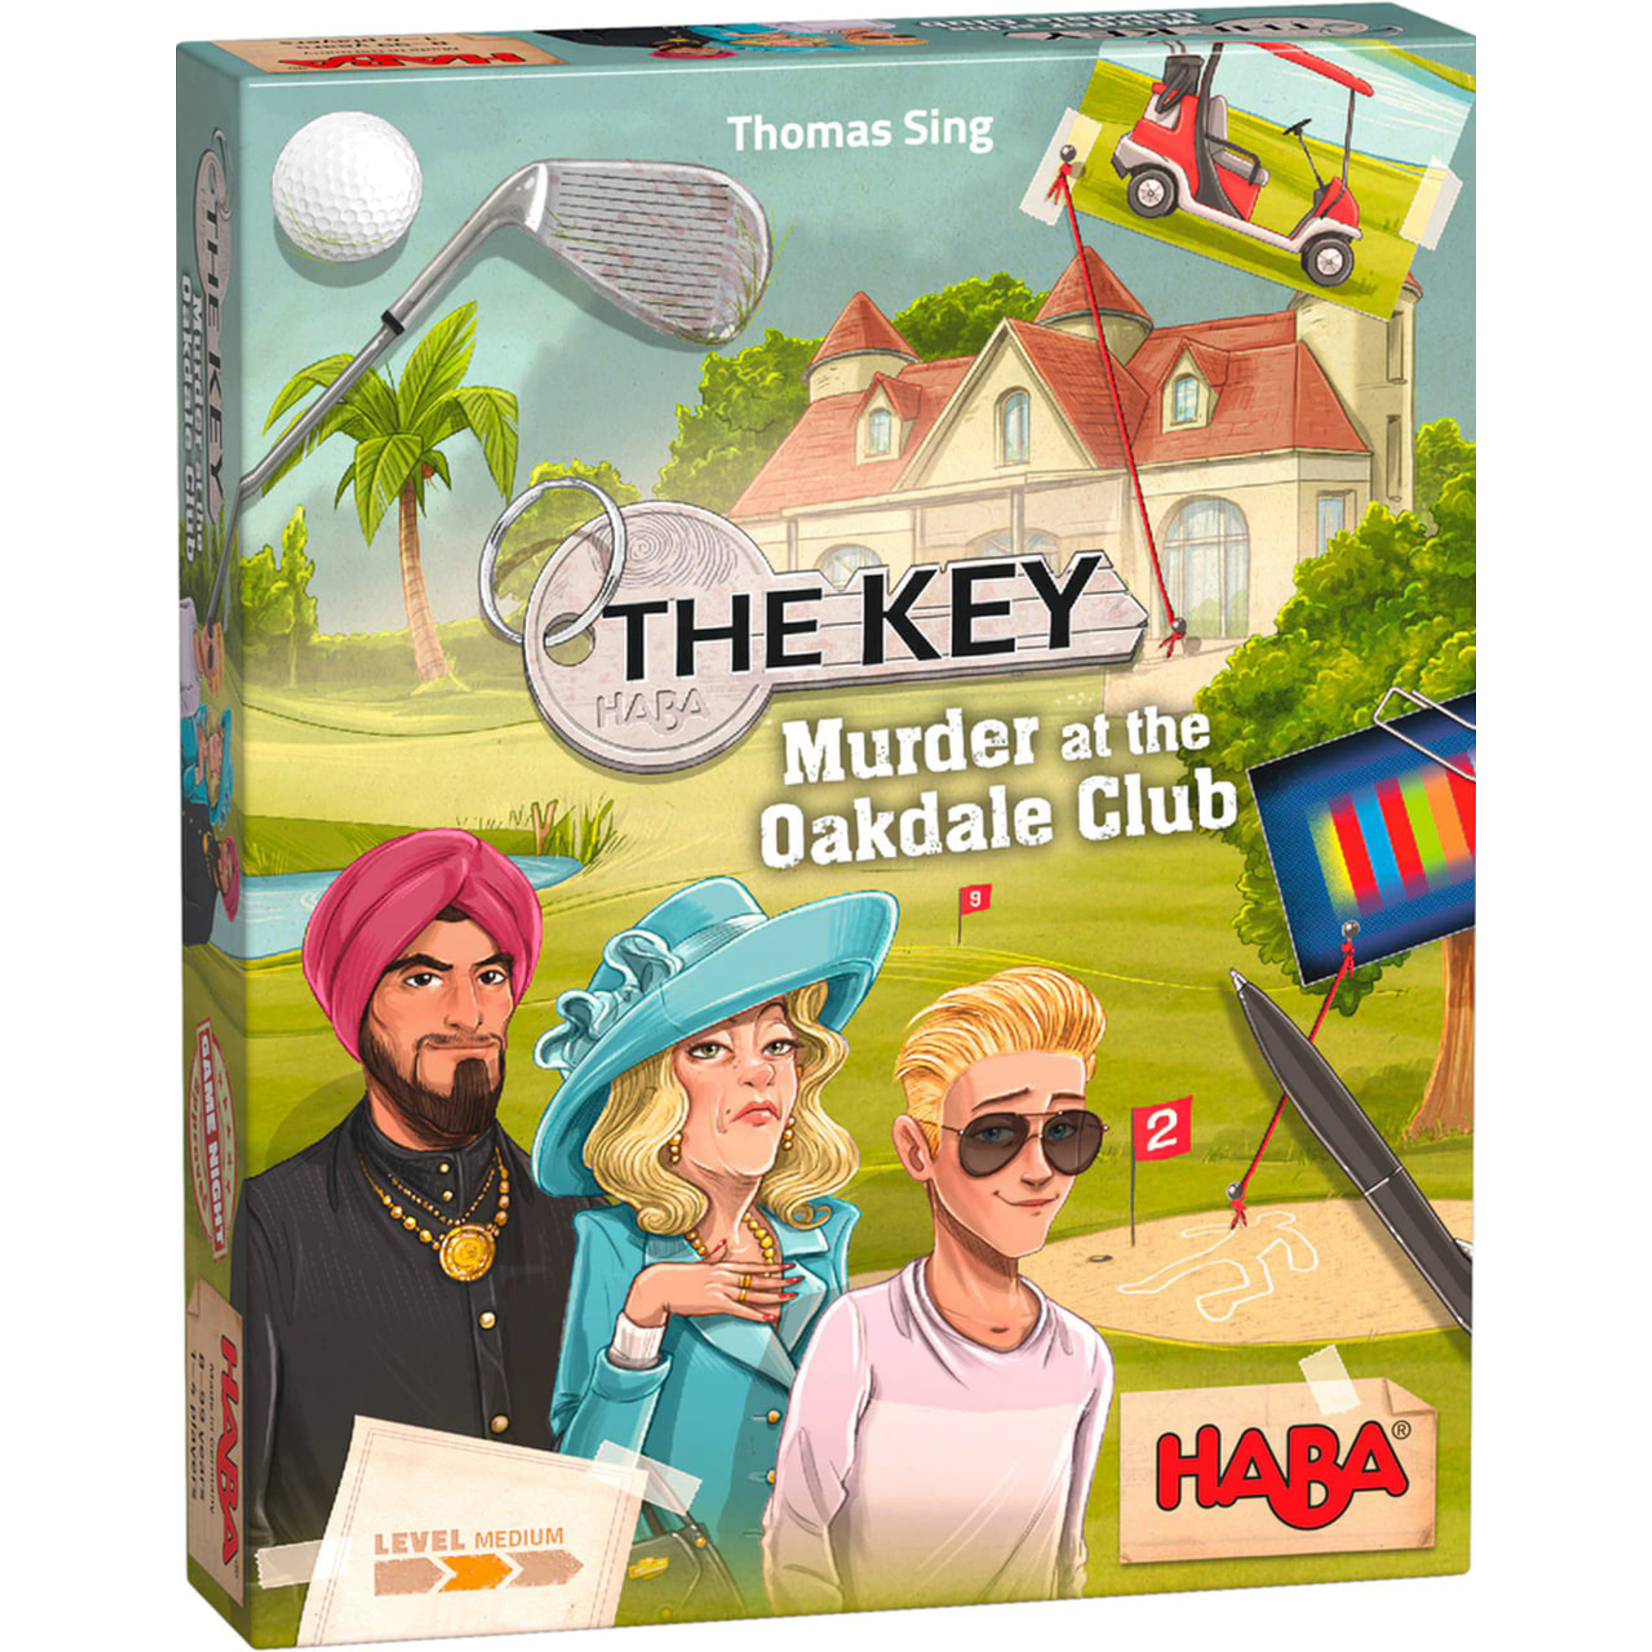 Haba The Key: Murder at the Oakdale Club